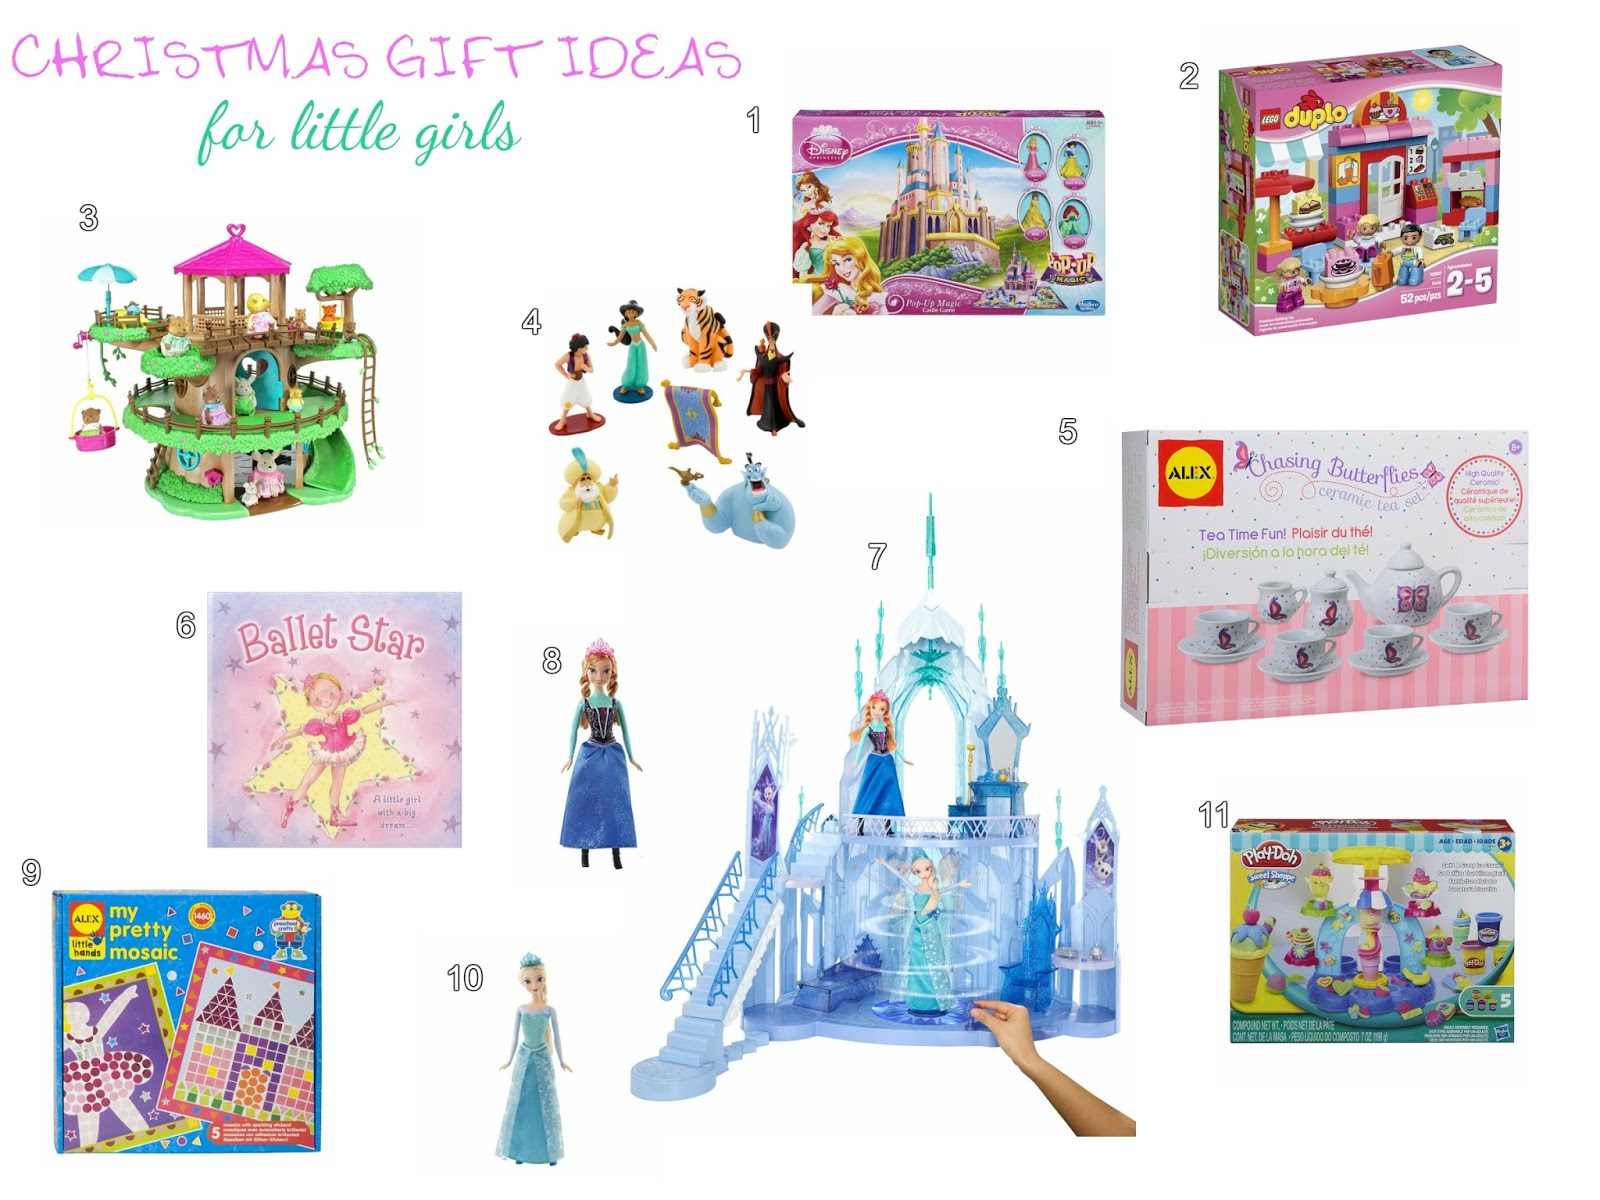 This Happy Life Christmas Gift List for little girls